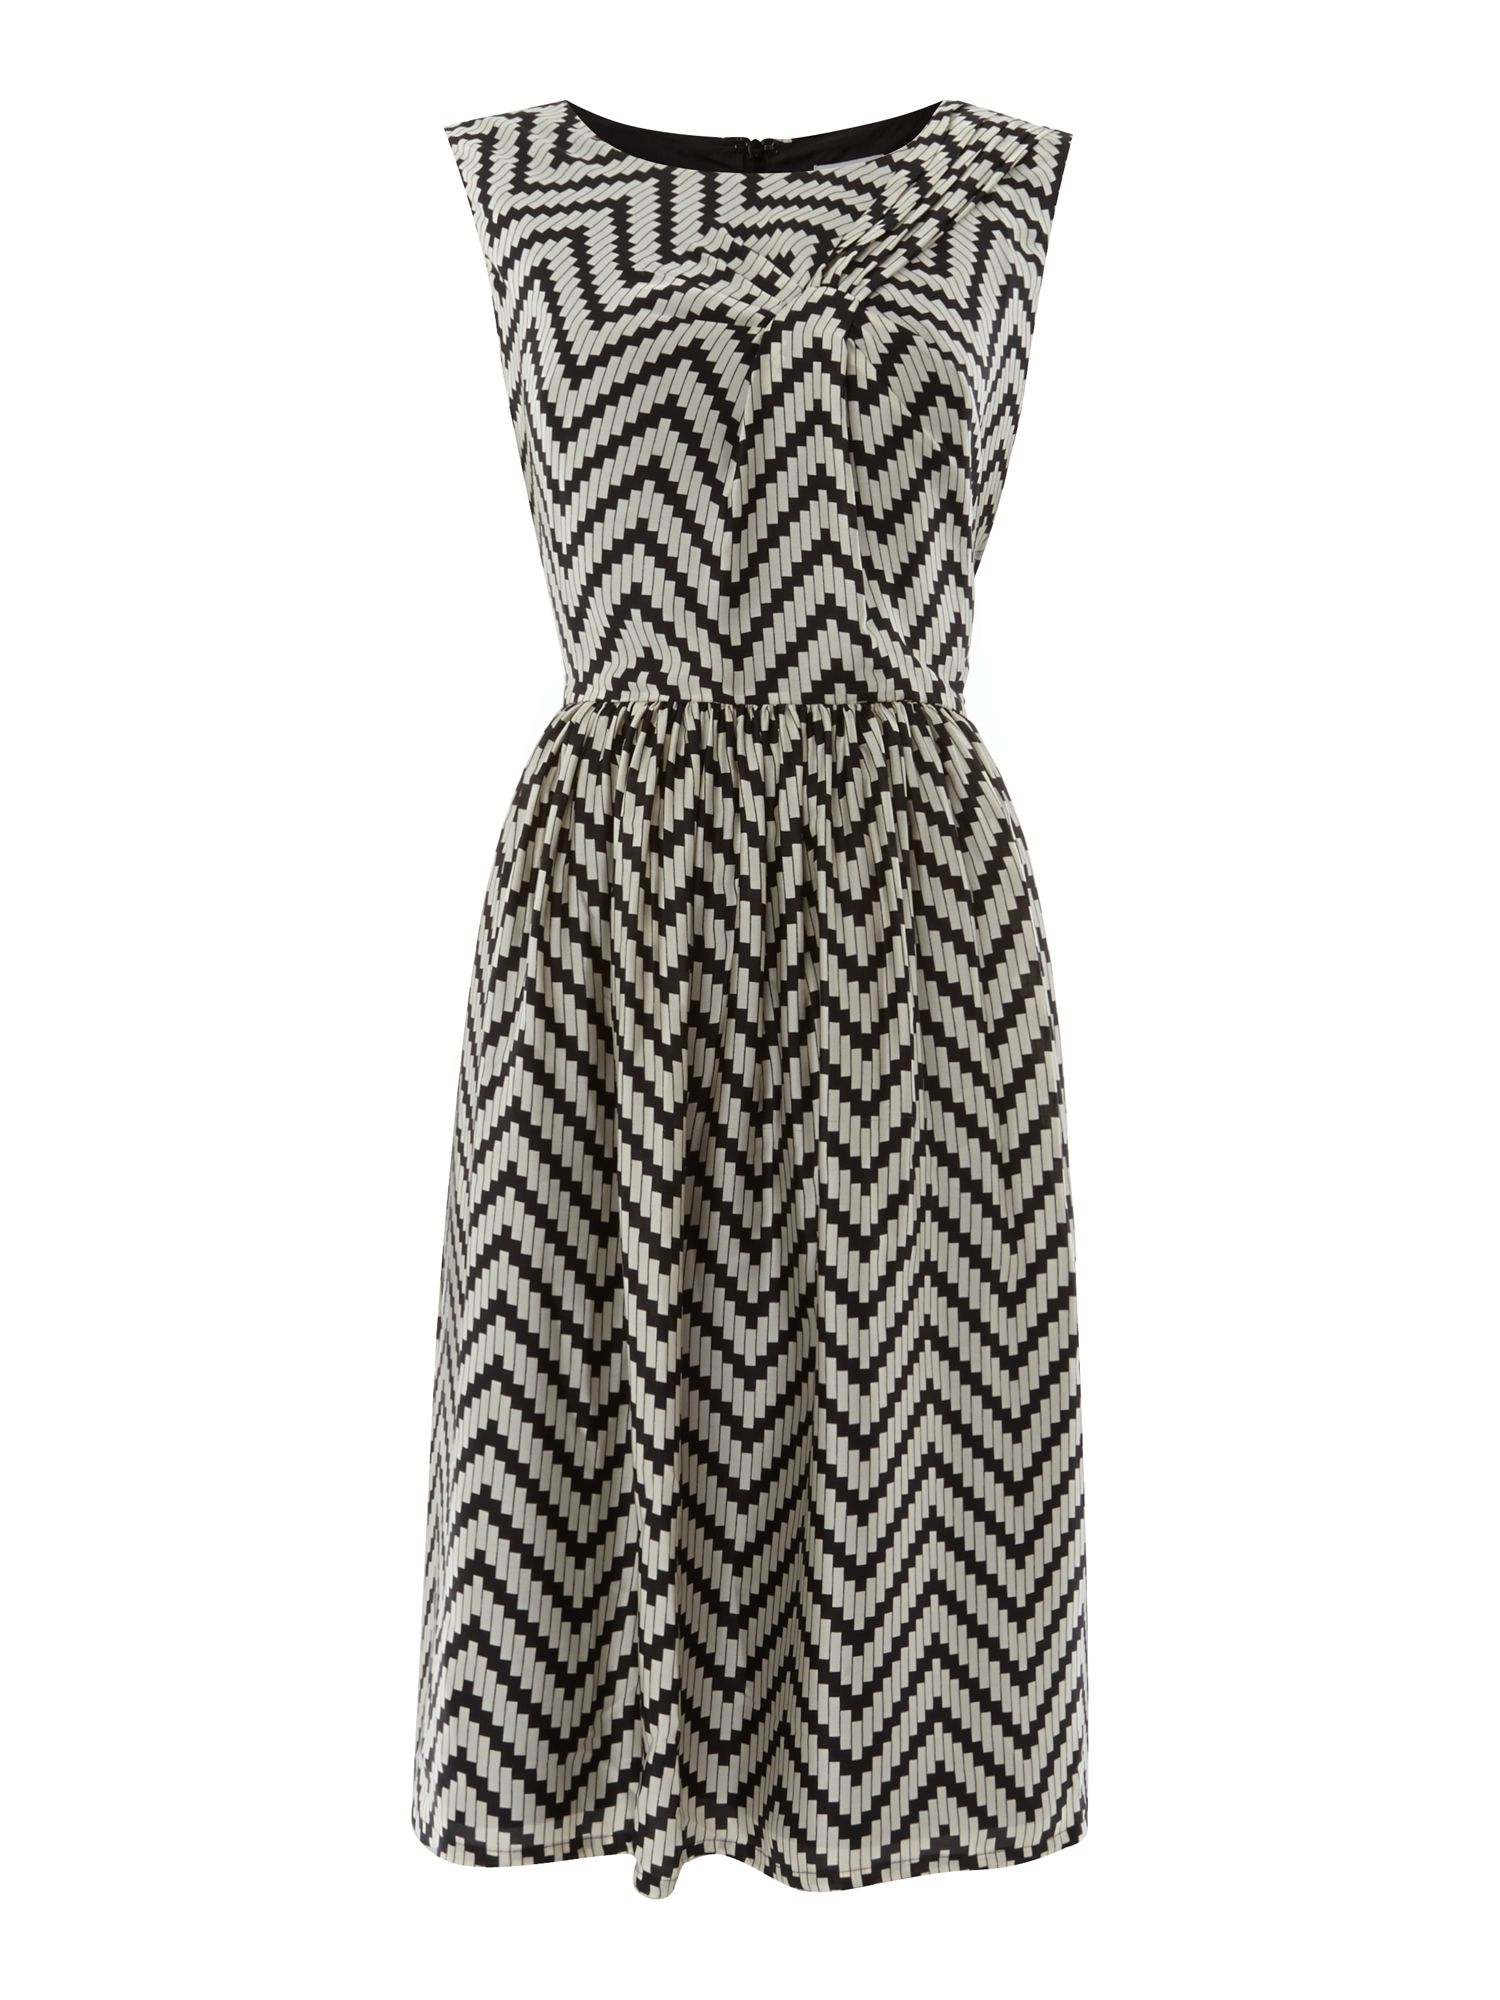 Tile printed dress